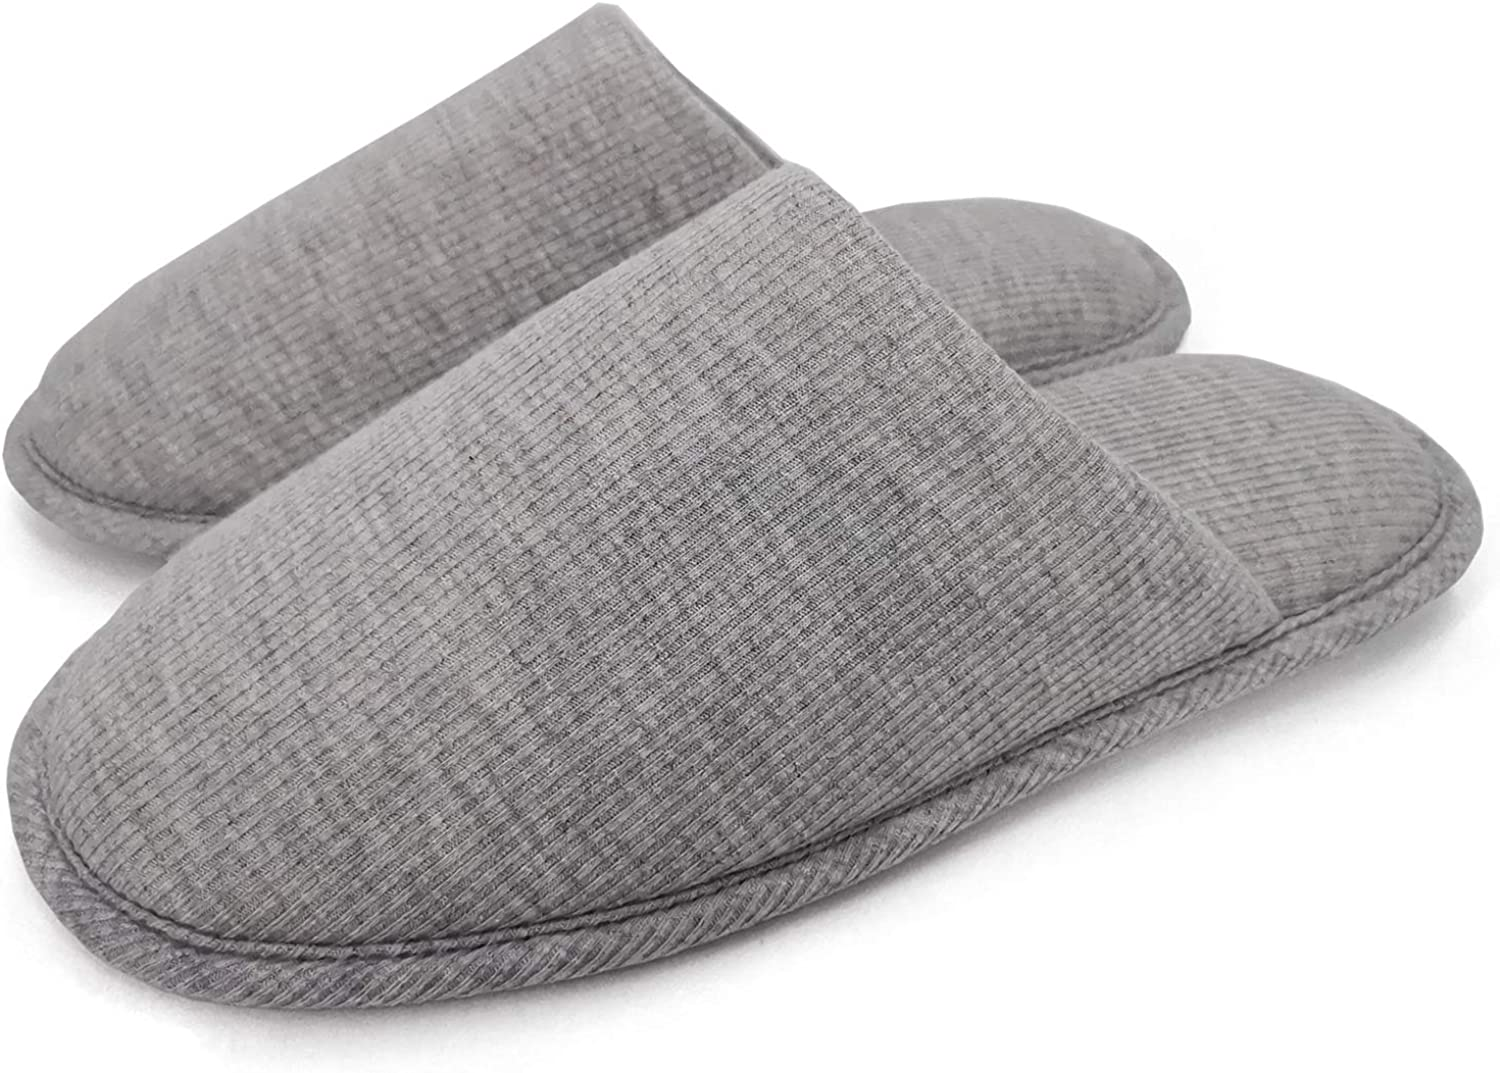 ofoot Men's Organic Cotton Cozy Indoor Slippers, Memory Foam House Flat,Washable Slip on Home Shoes